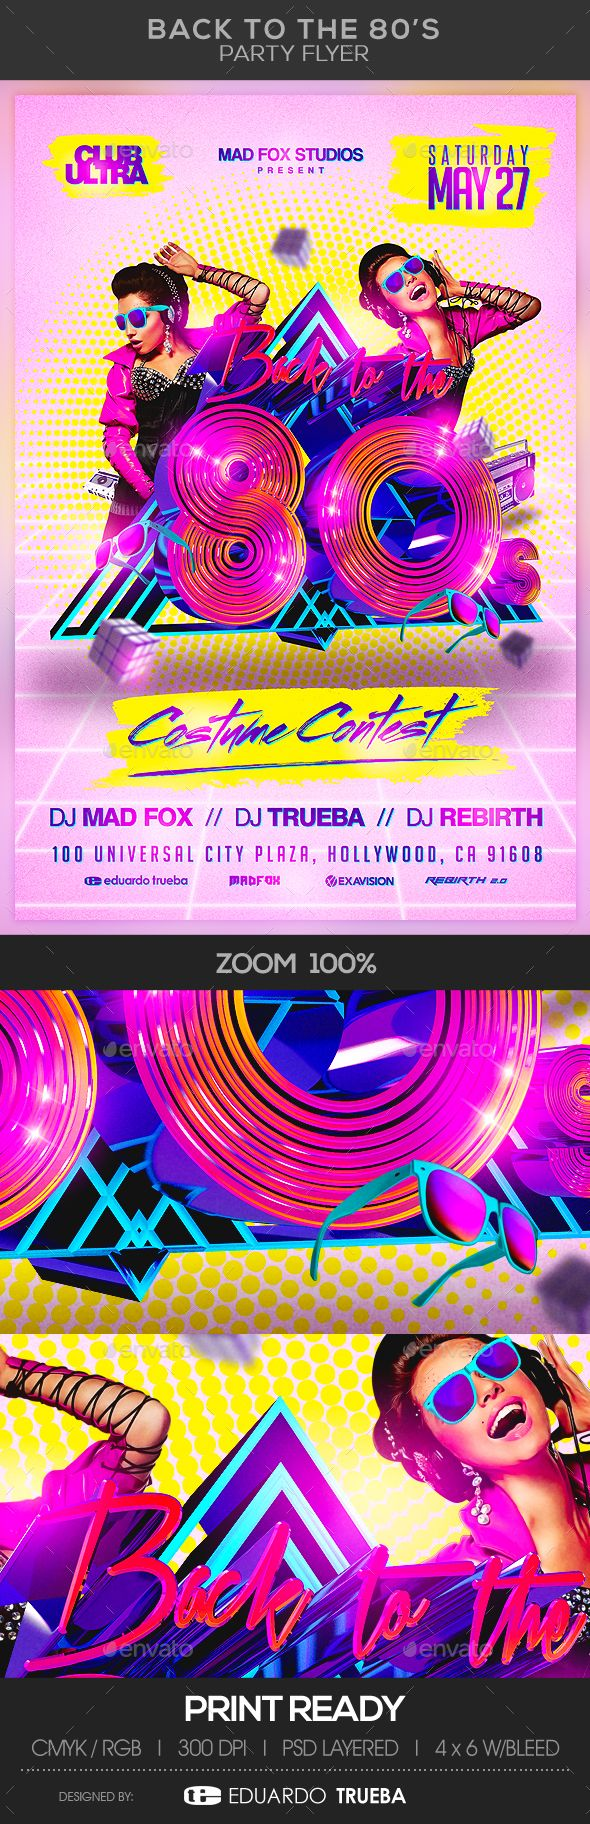 Back to the 80's Party Flyer Template PSD